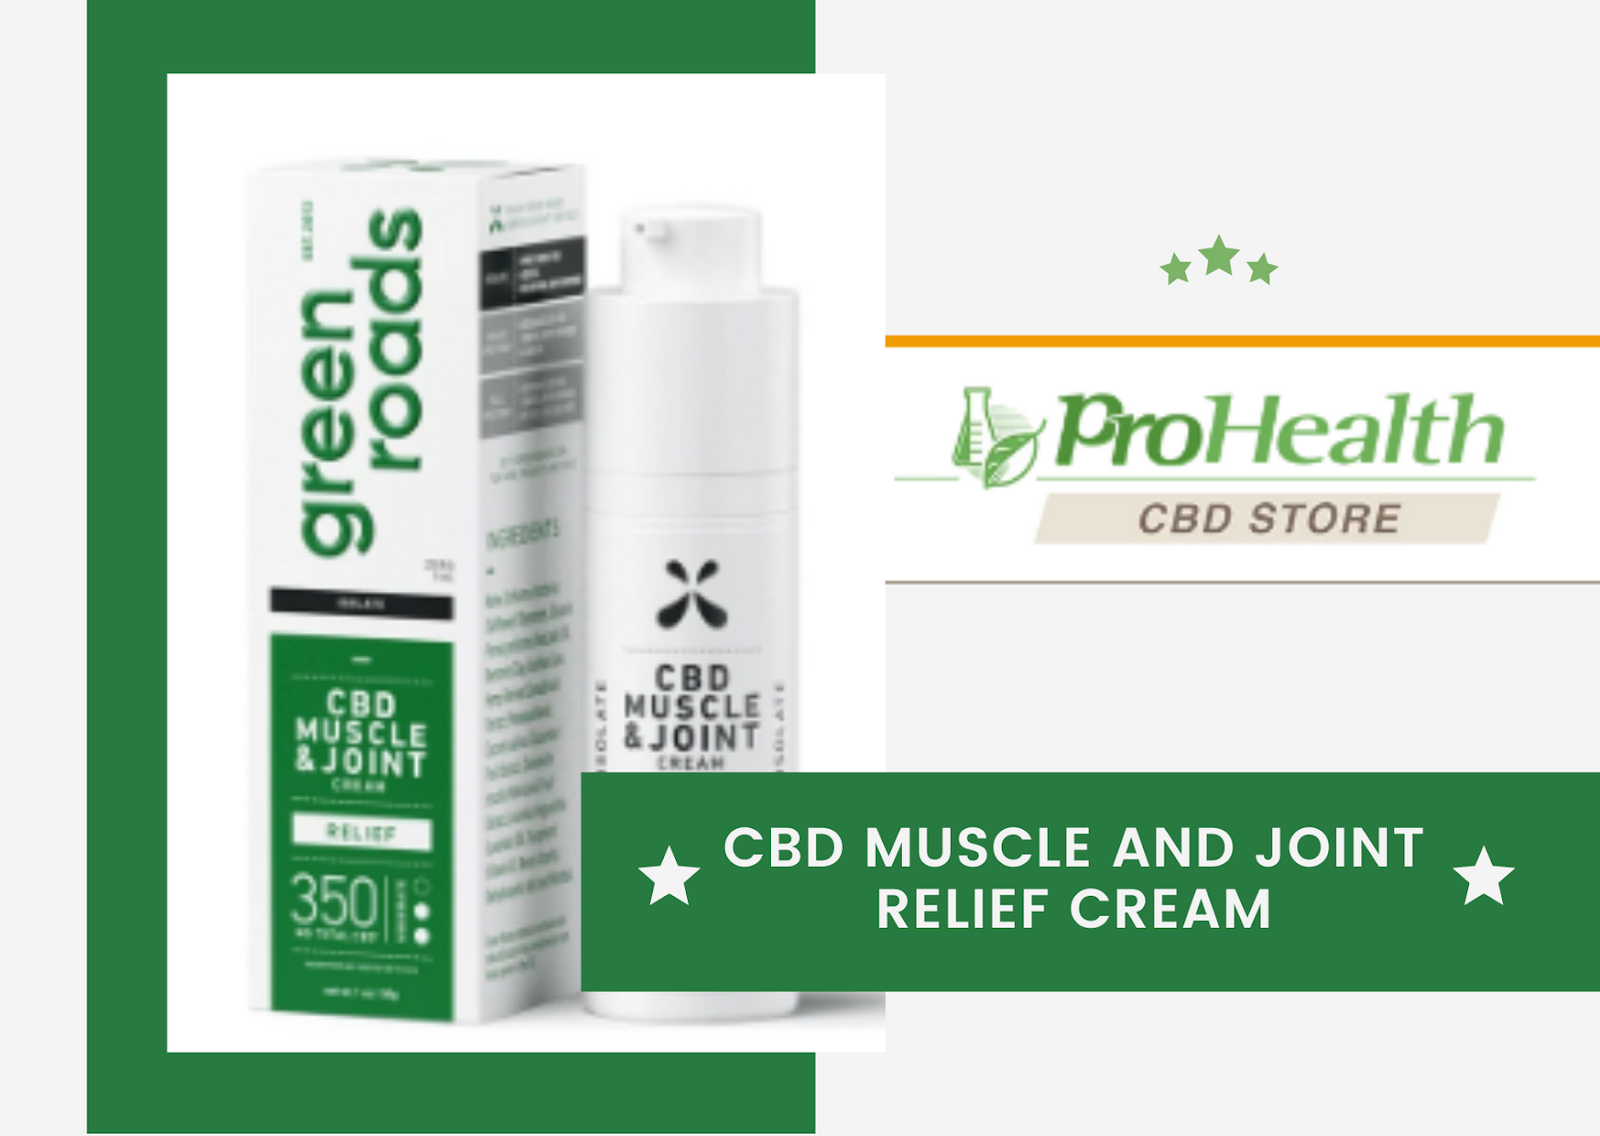 CBD Muscle and Joint Relief Cream